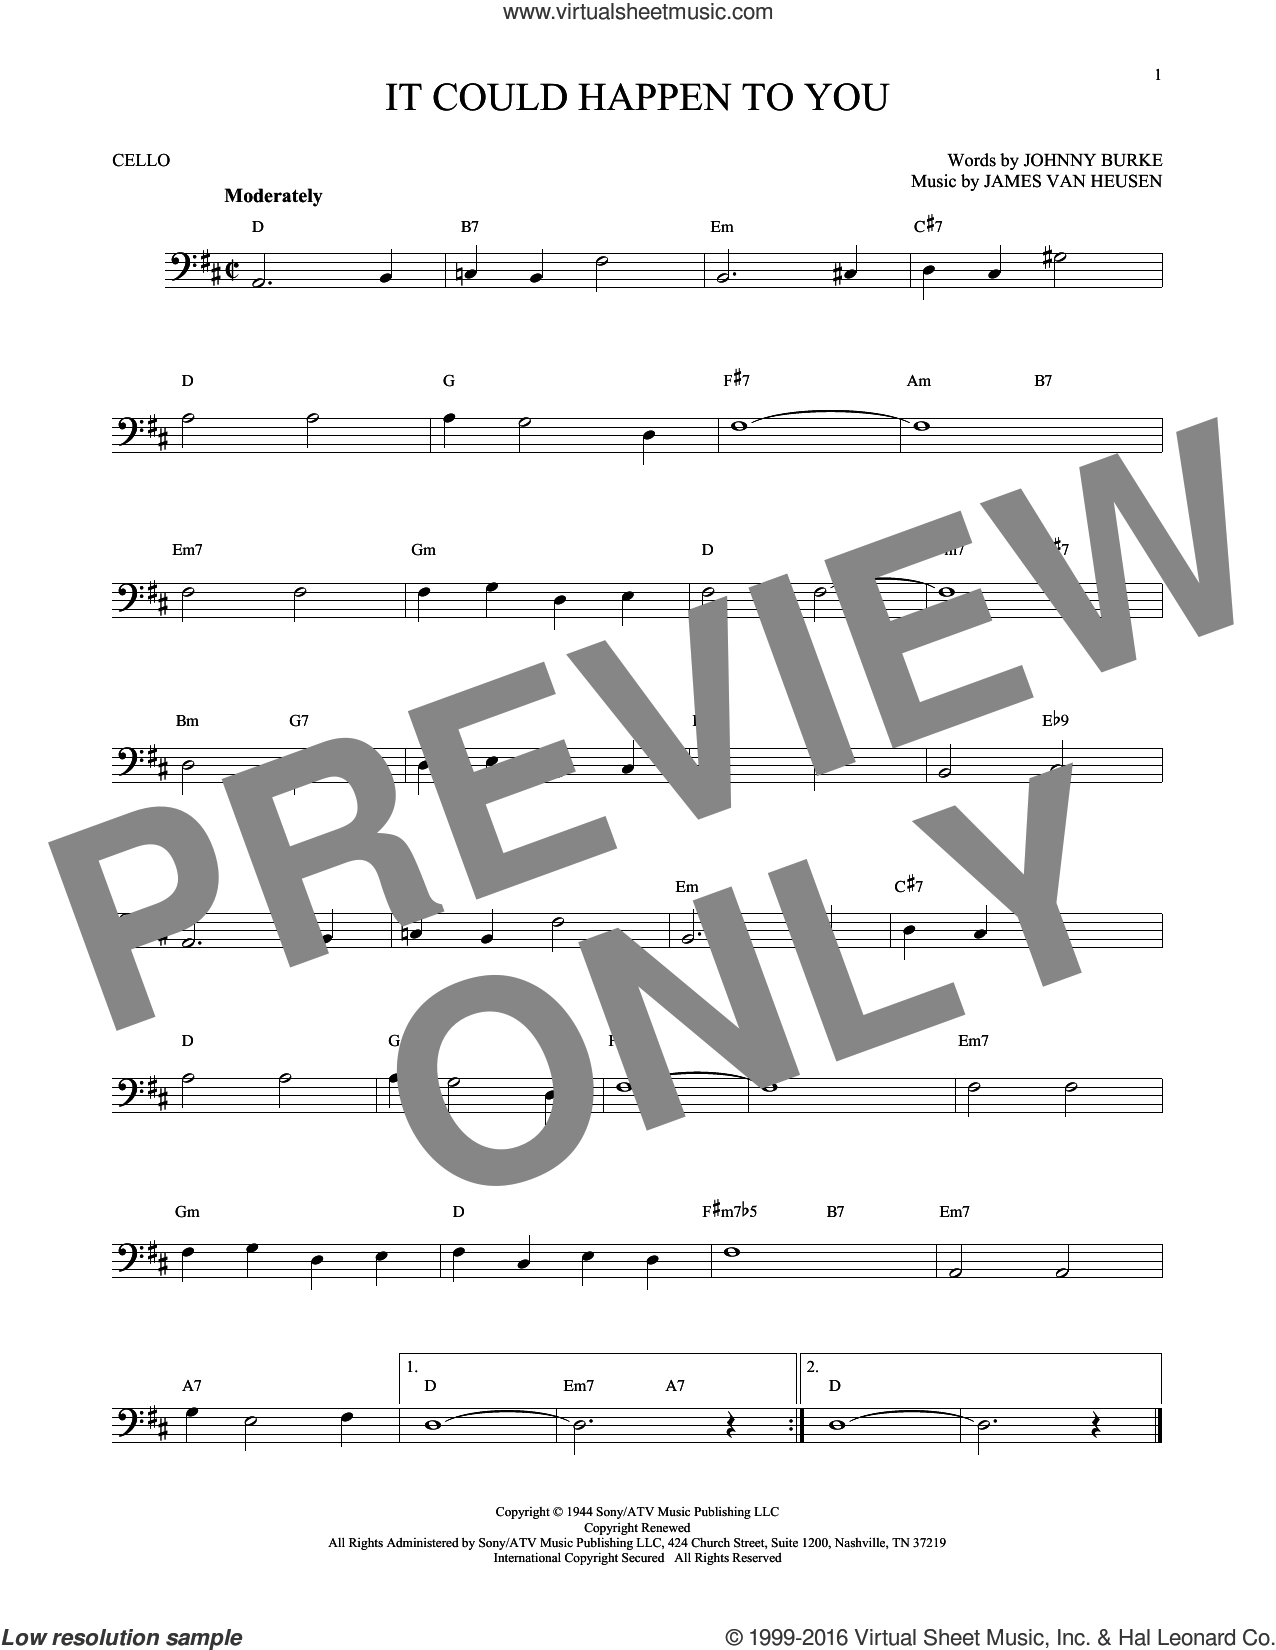 It Could Happen To You sheet music for cello solo by Jimmy van Heusen, June Christy and John Burke. Score Image Preview.